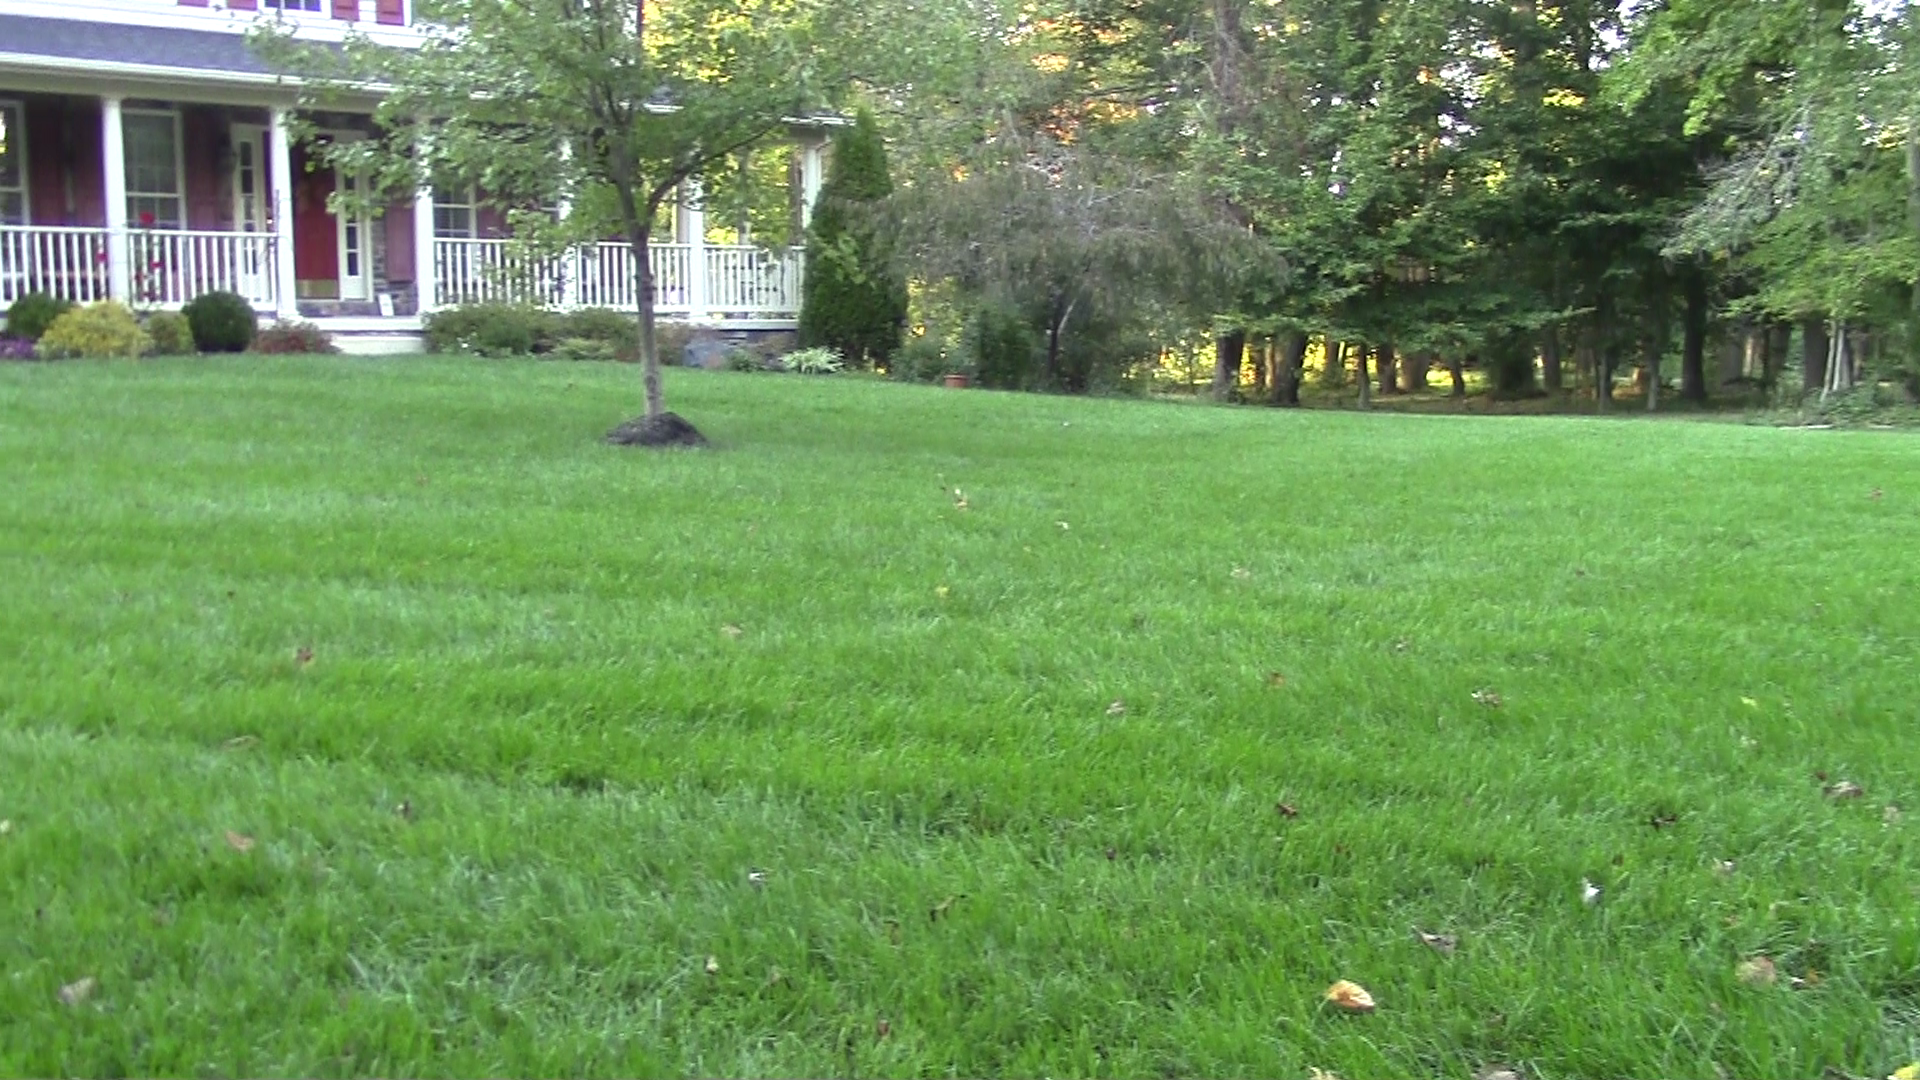 You too can have a lawn like this - follow this blog to see how